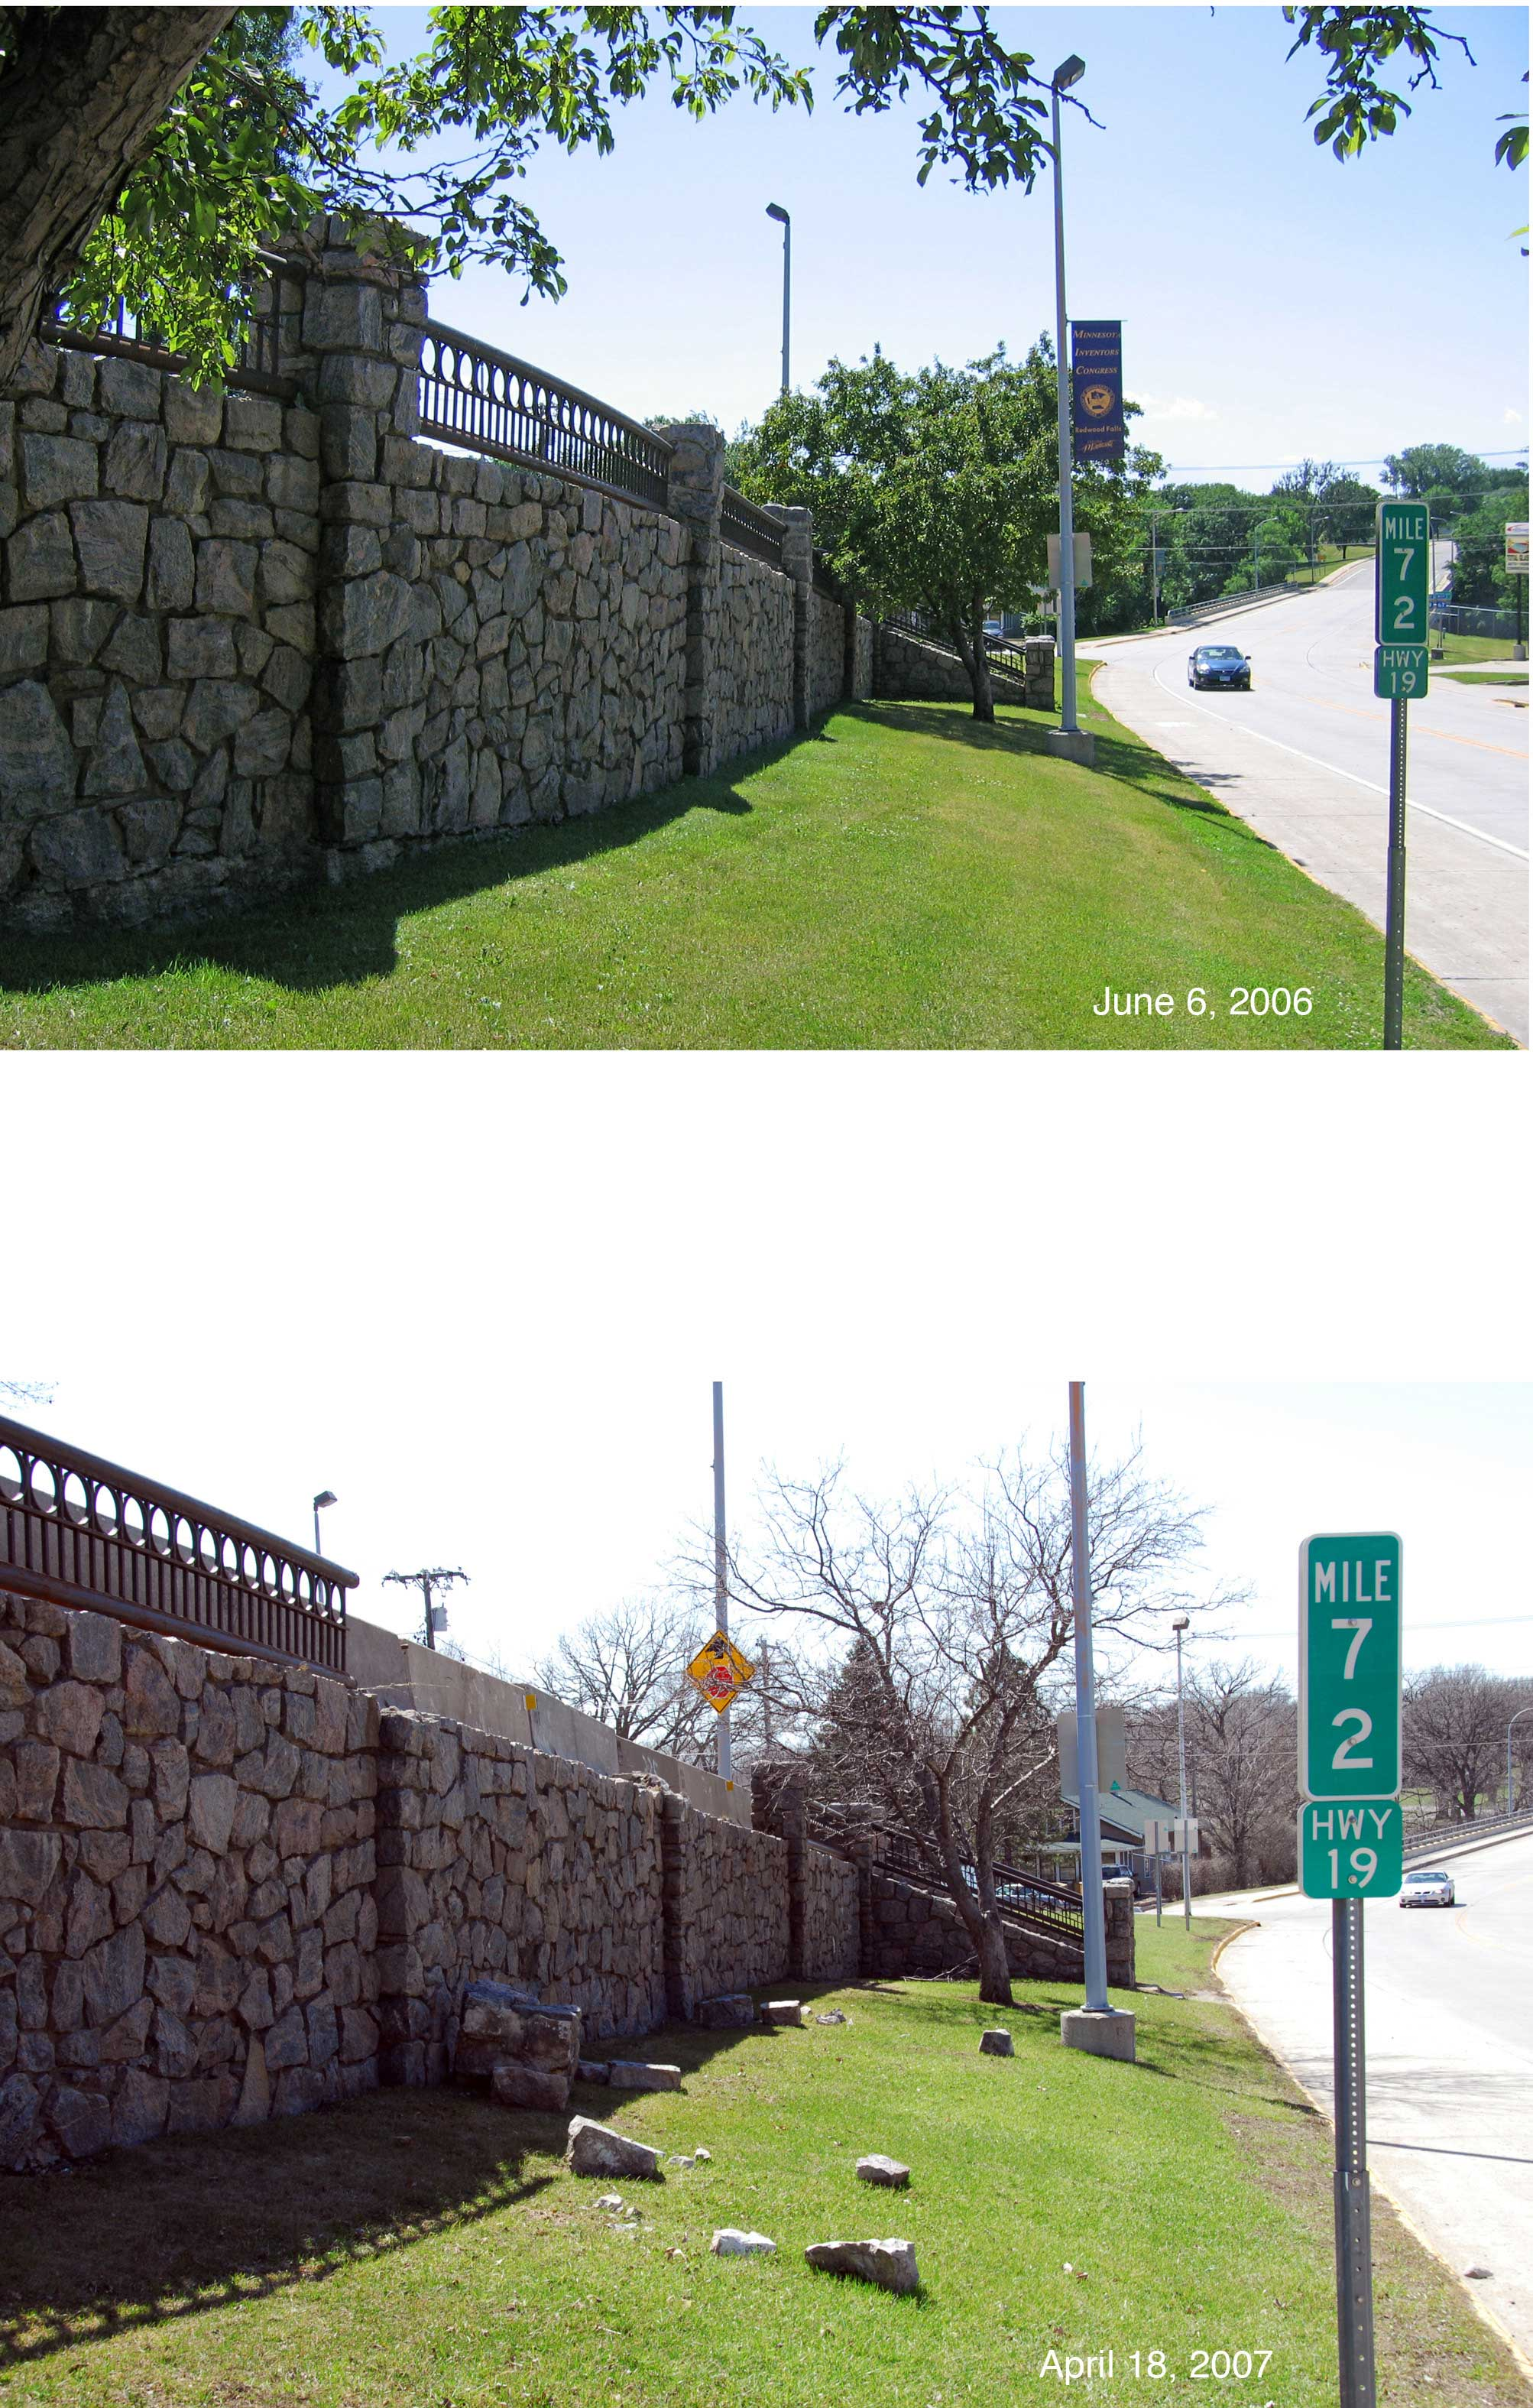 The historic Redwood Falls Retaining Wall in 2006, a year before sustaining its first commercial vehicle-related accident.